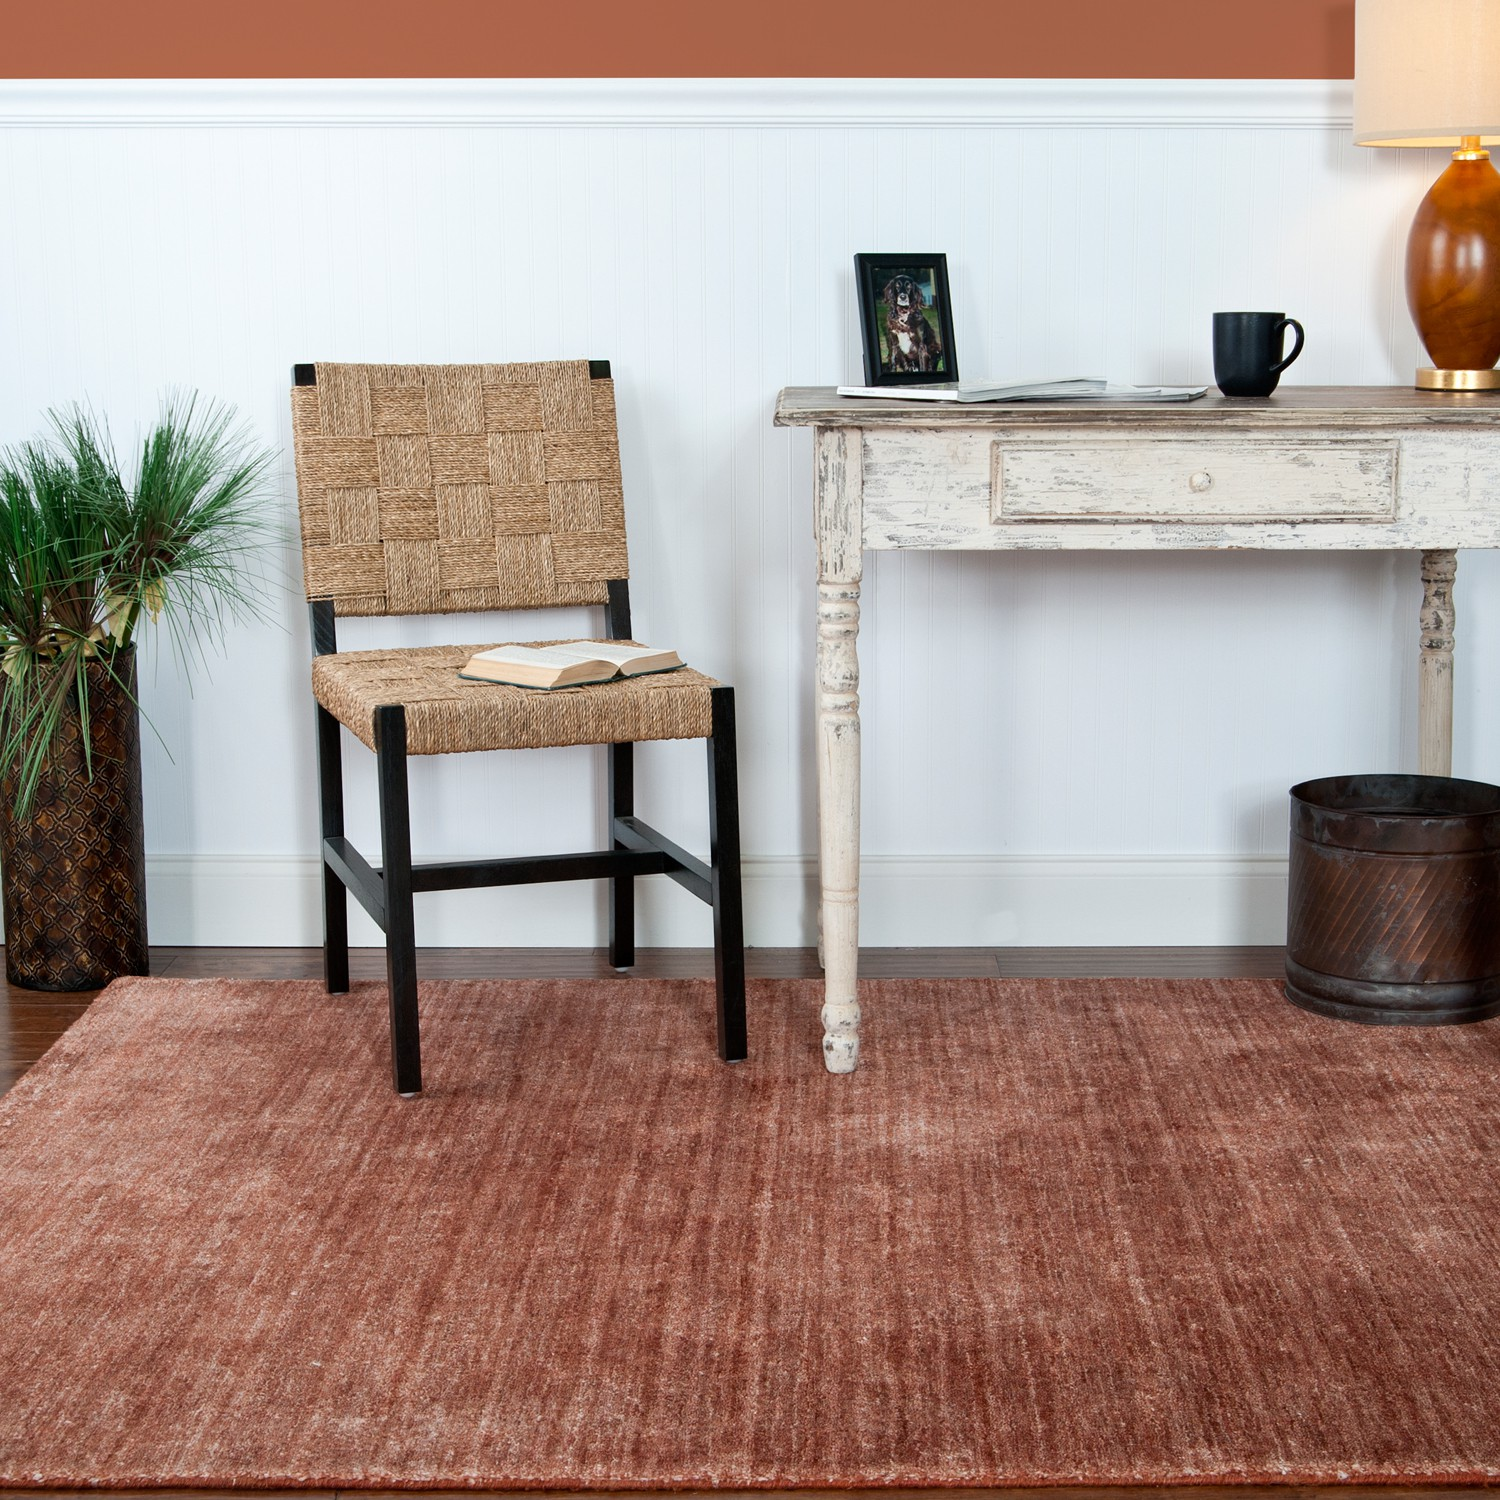 Solid Brown Surya Rugs On Wooden Floor Plus Single Chair And White Table Ideas